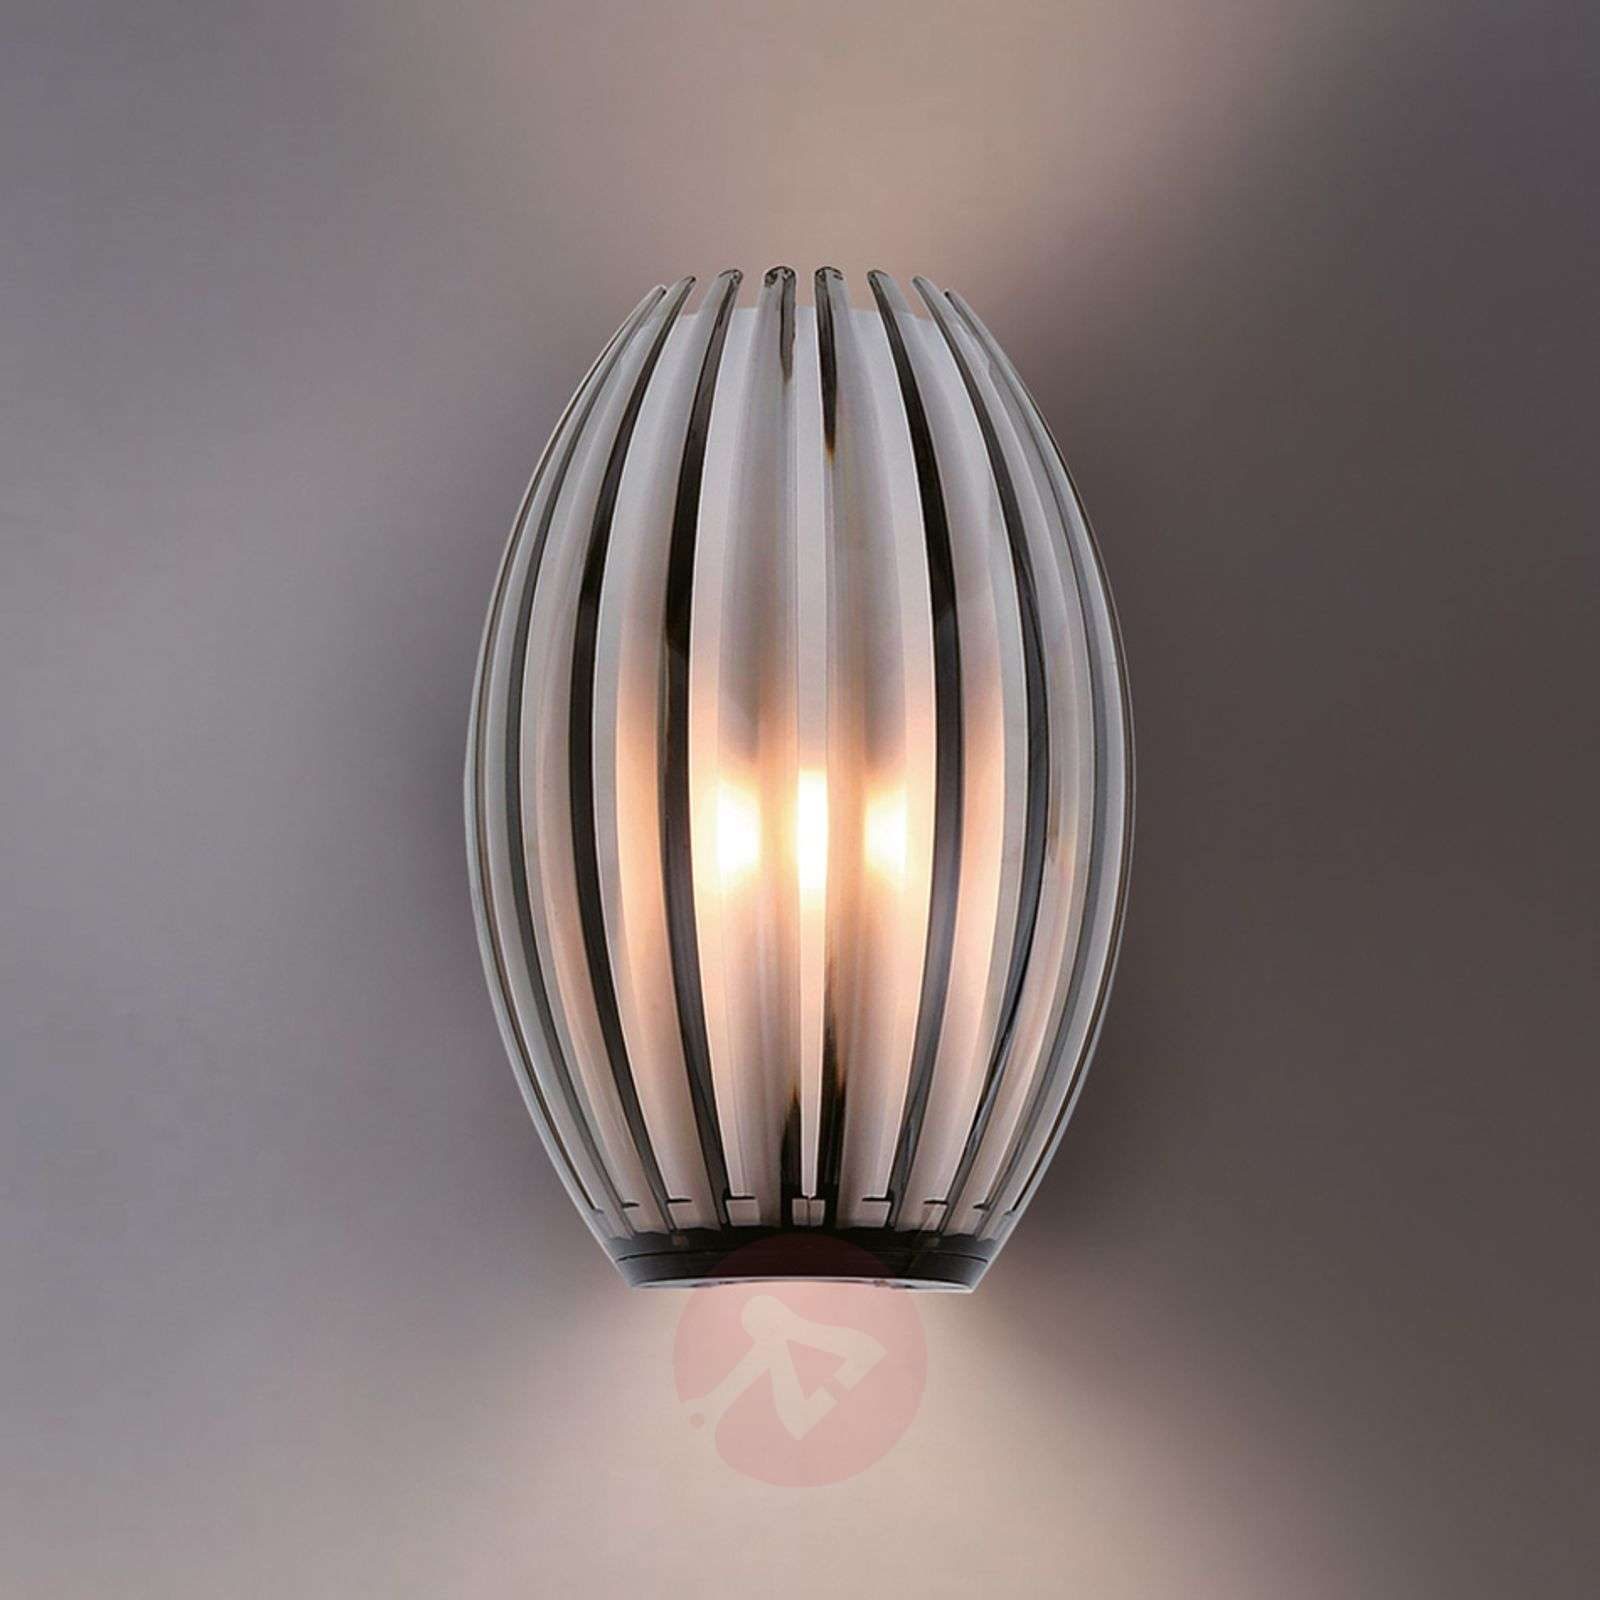 Wall light Maja-7516314-01